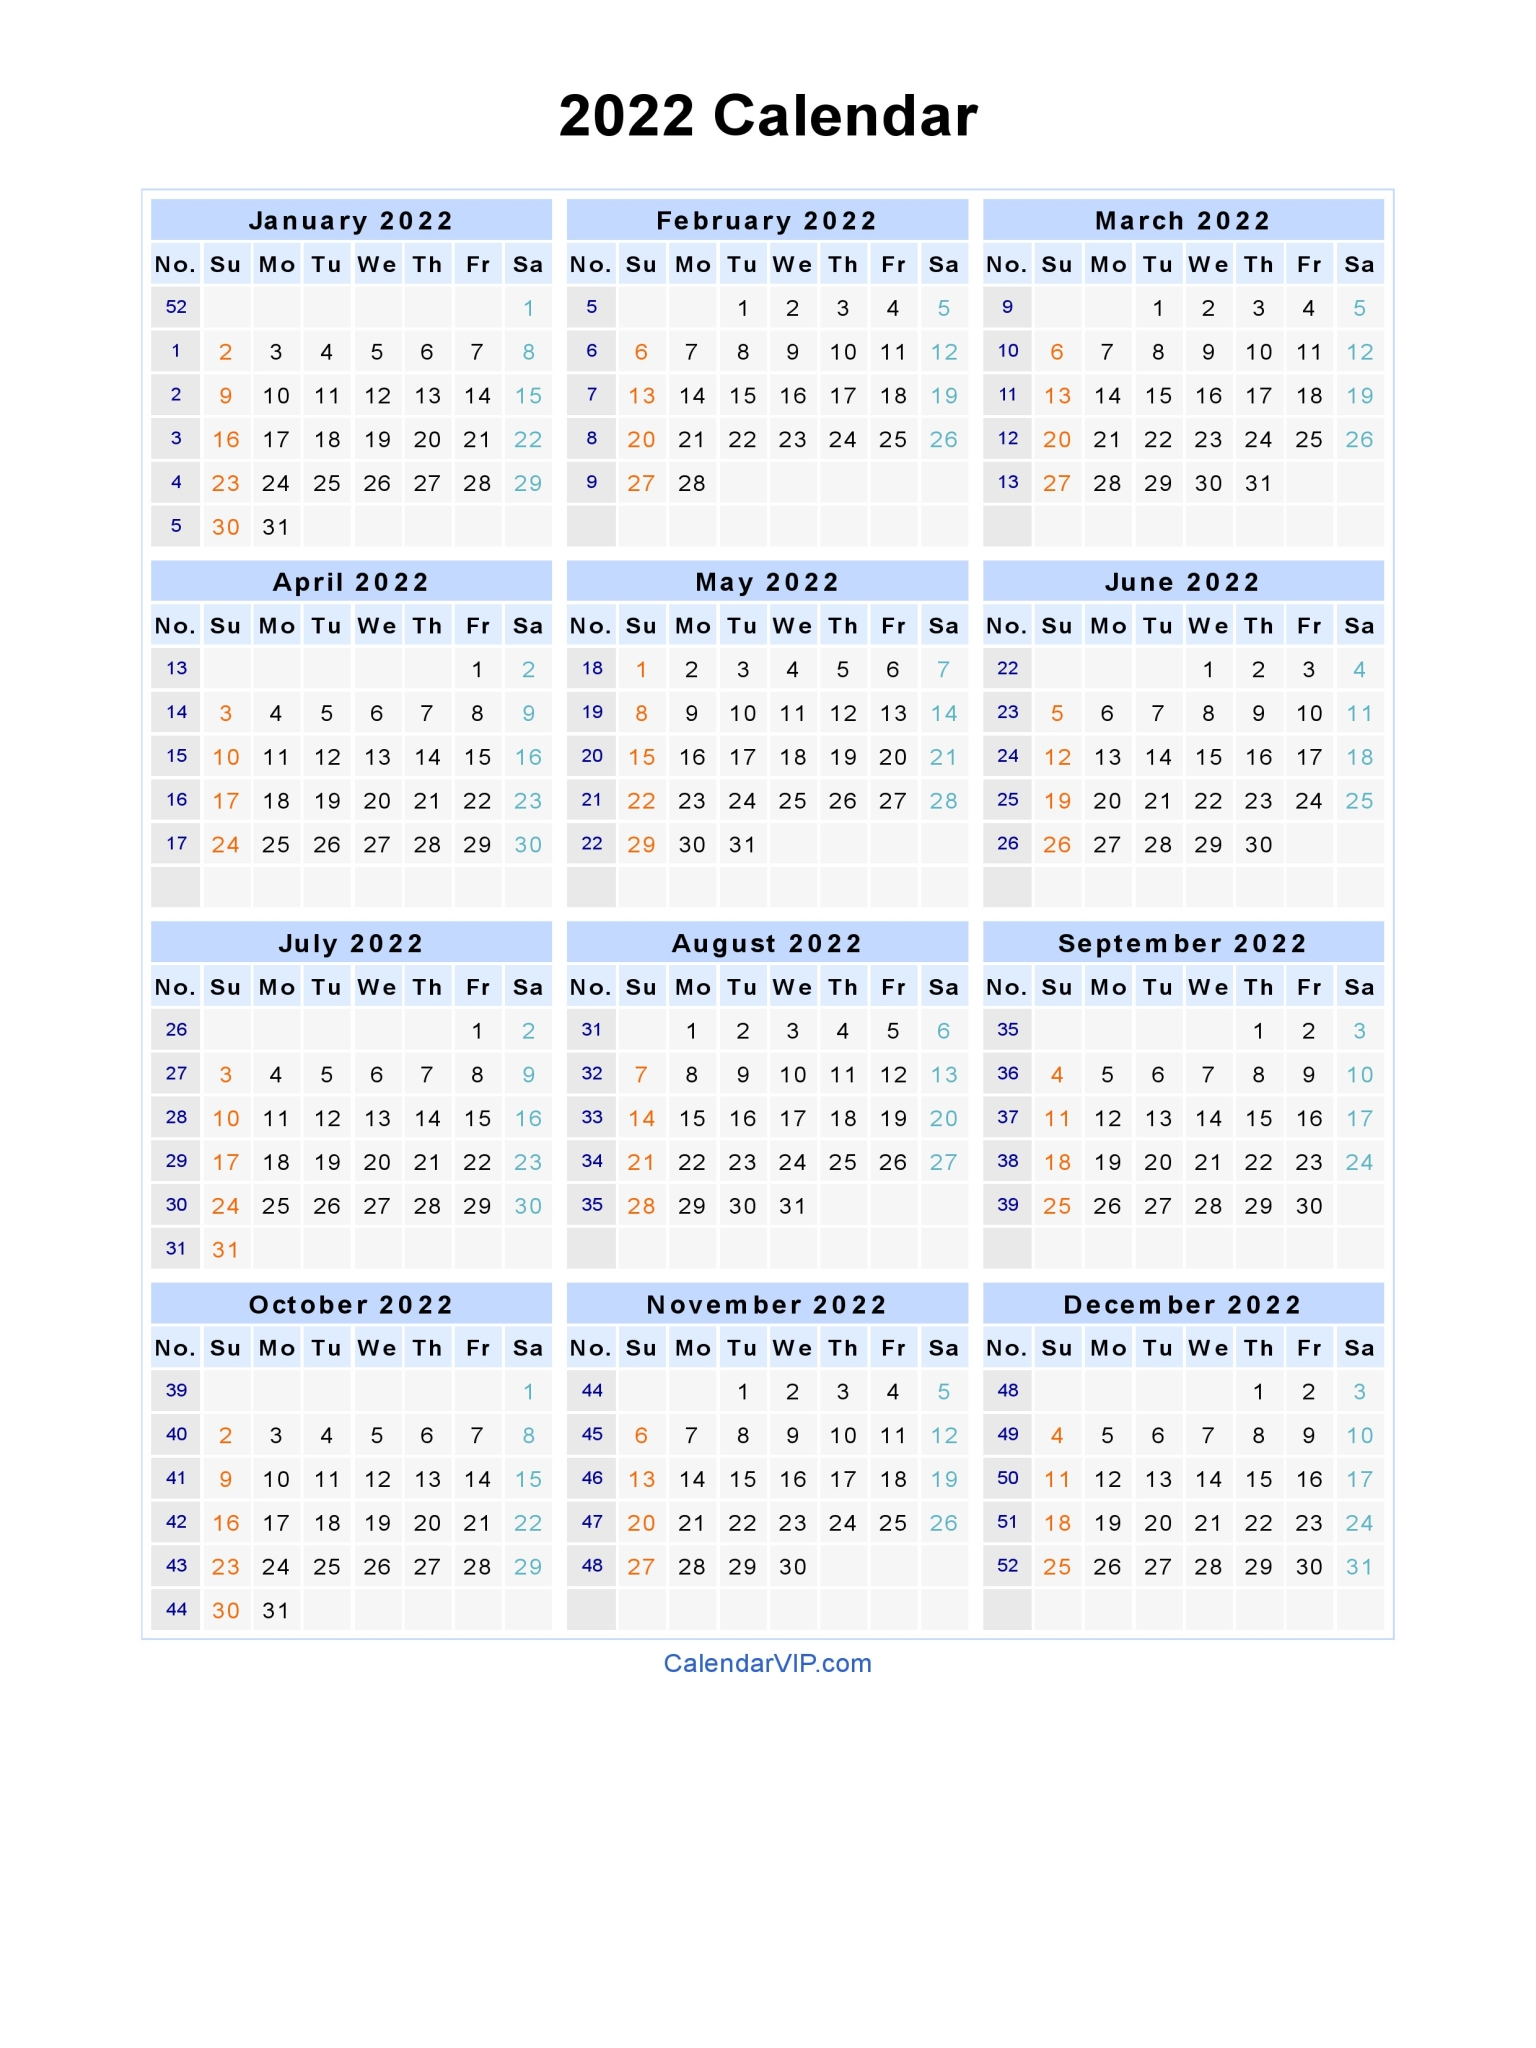 Federal holidays in the united states. 2022 Calendar - Blank Printable Calendar Template in PDF ...